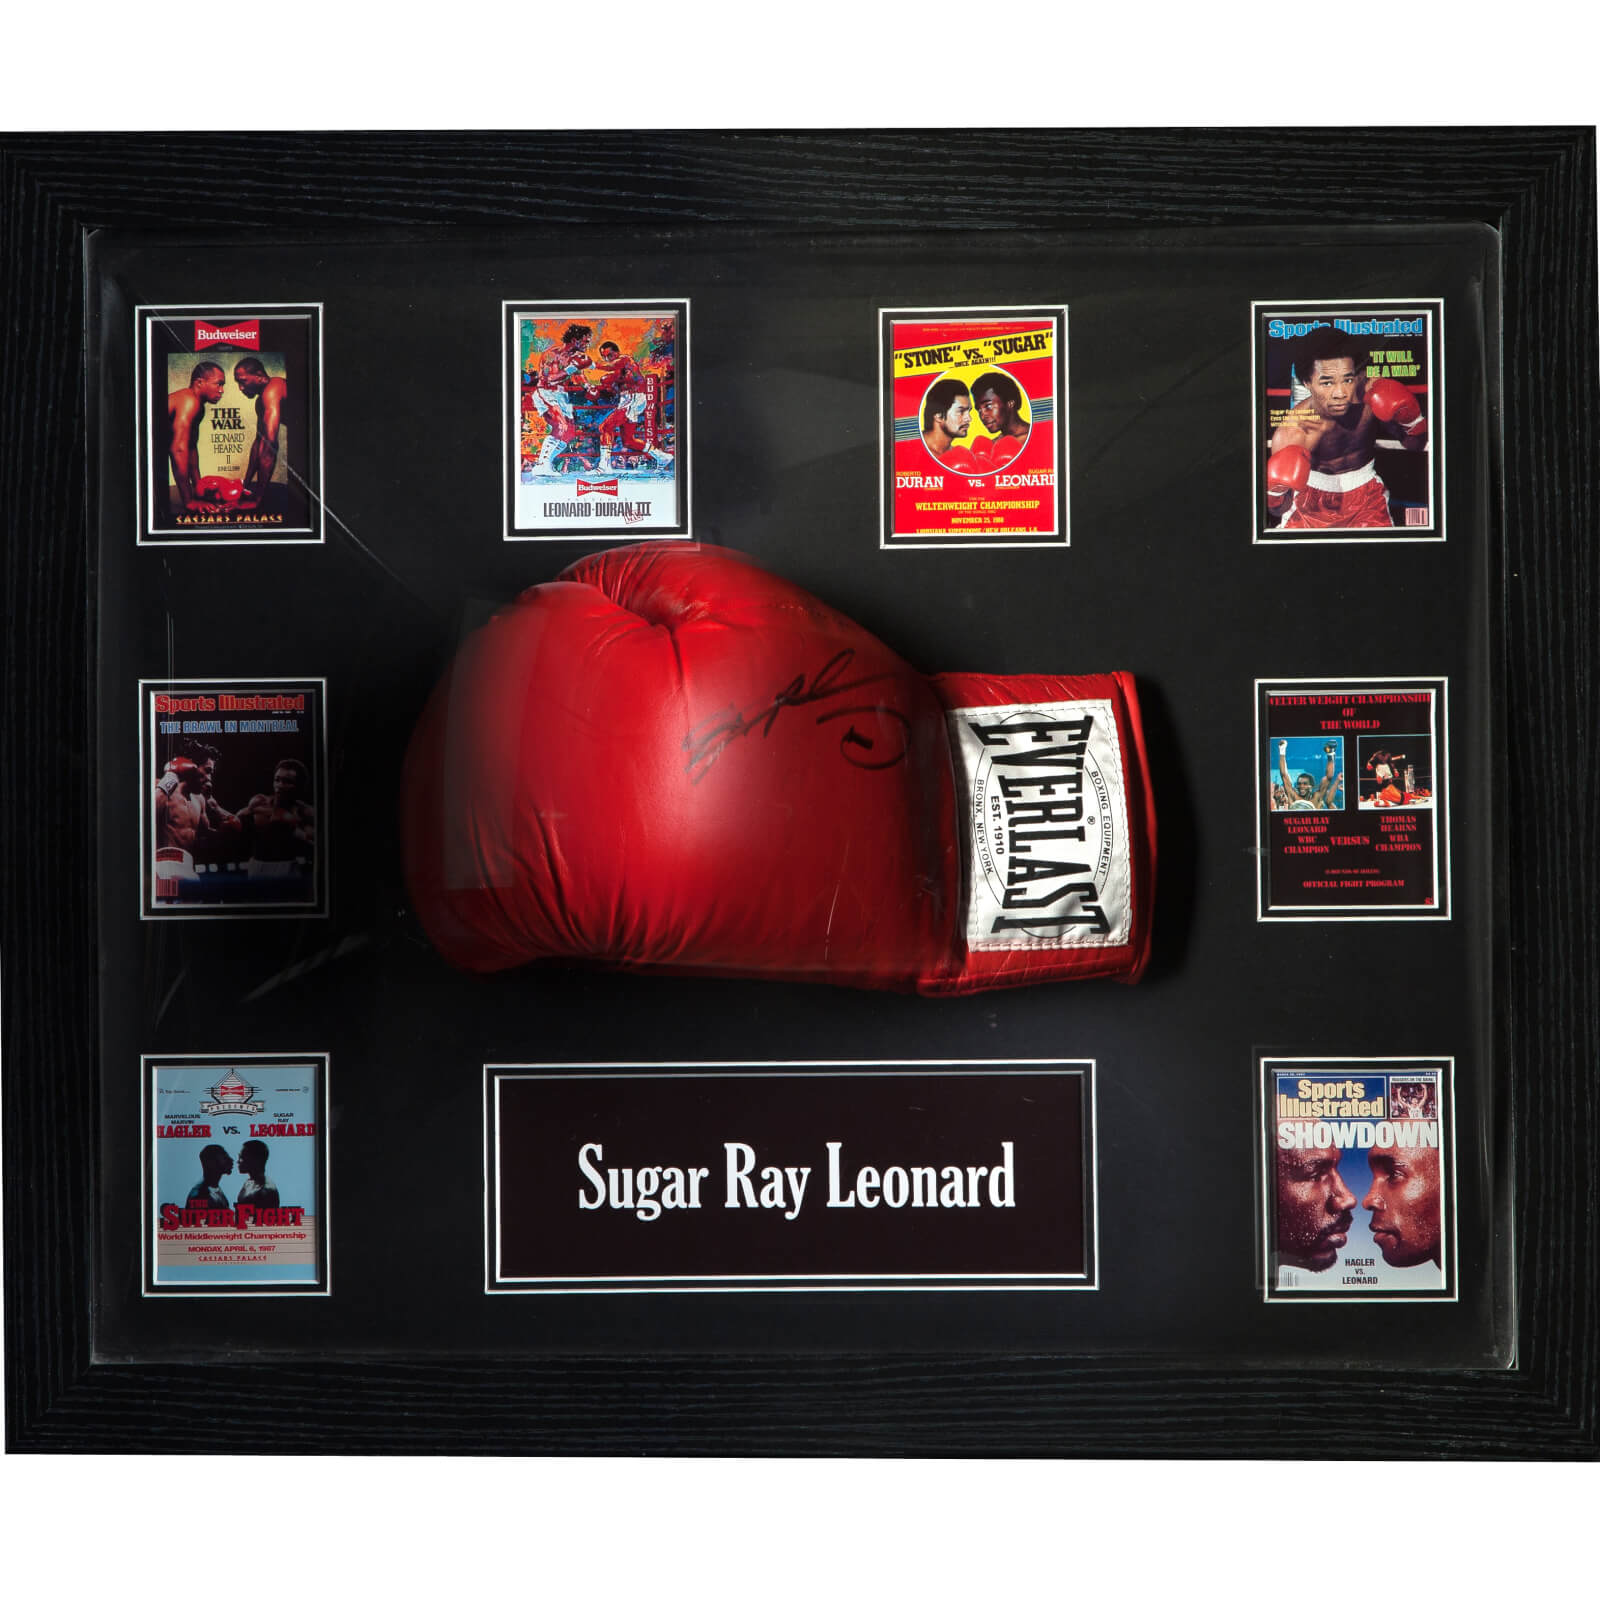 Sugar Ray Leonard Signed And Framed Boxing Glove With Domed Frame